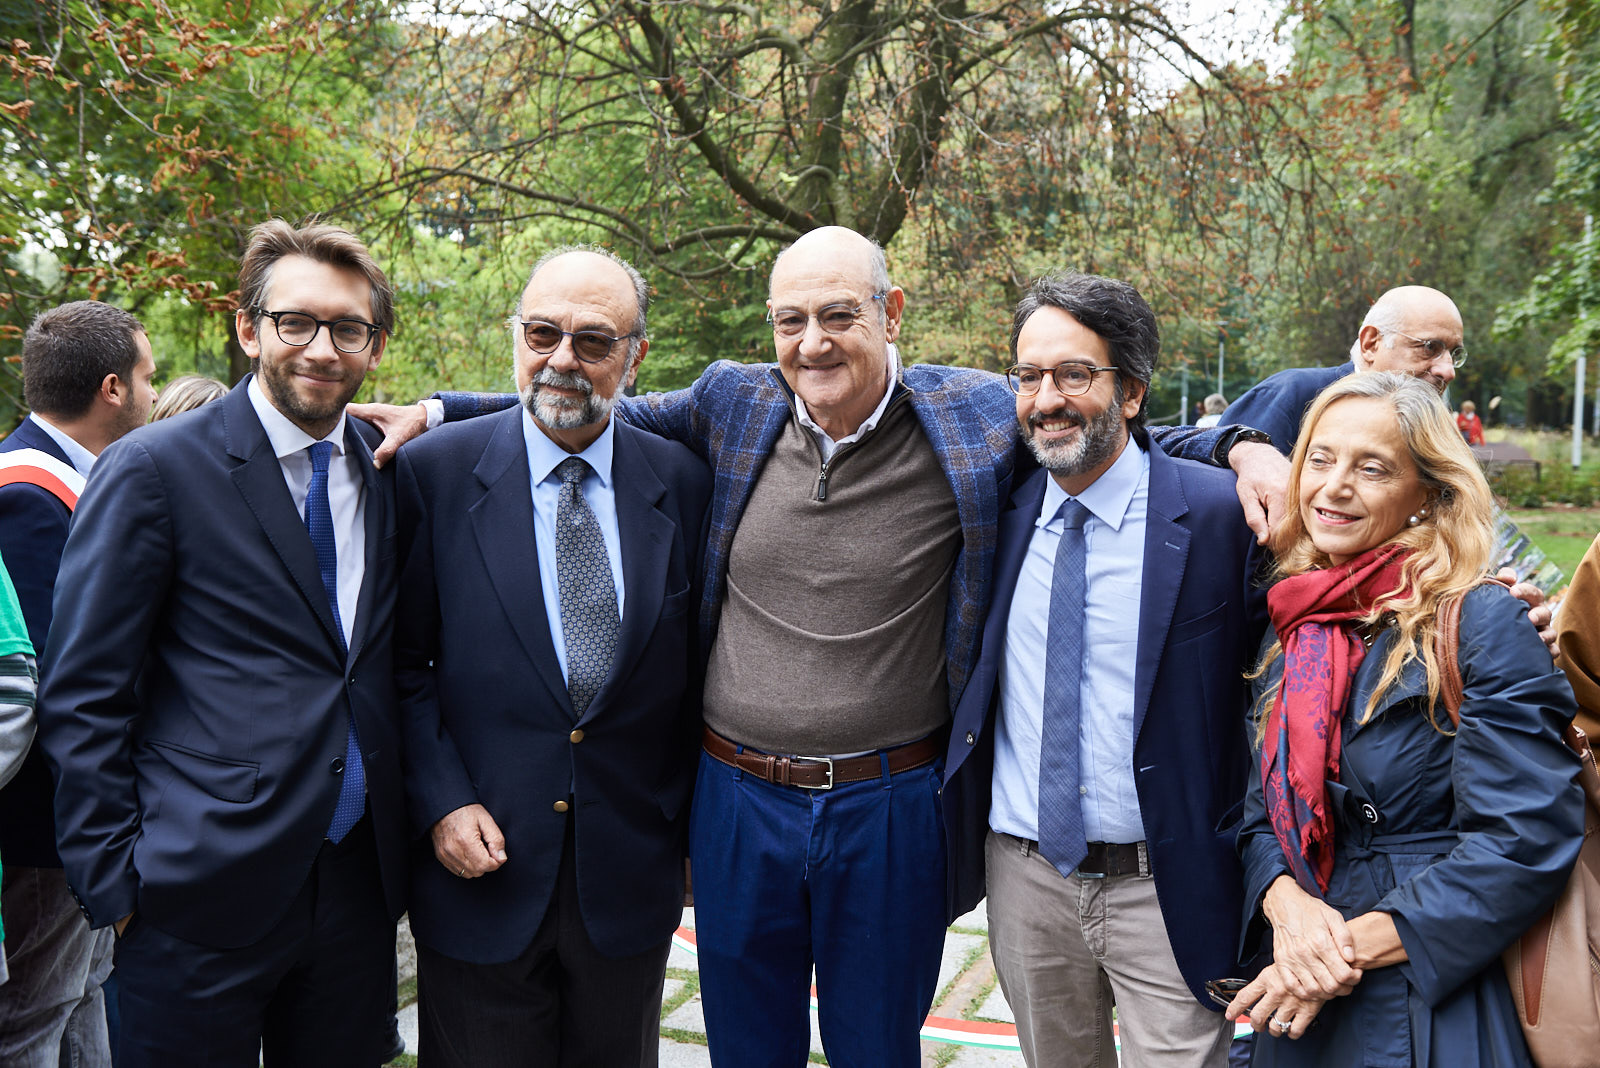 With Pierfrancesco Maran, Councillor for City Planning, Green and Agriculture of the City of Milan, Giorgio Mortara, UCEI Vice President, Gabriele Nissim, President of Gariwo, Lamberto Bertolé, President of the City Council of Milan